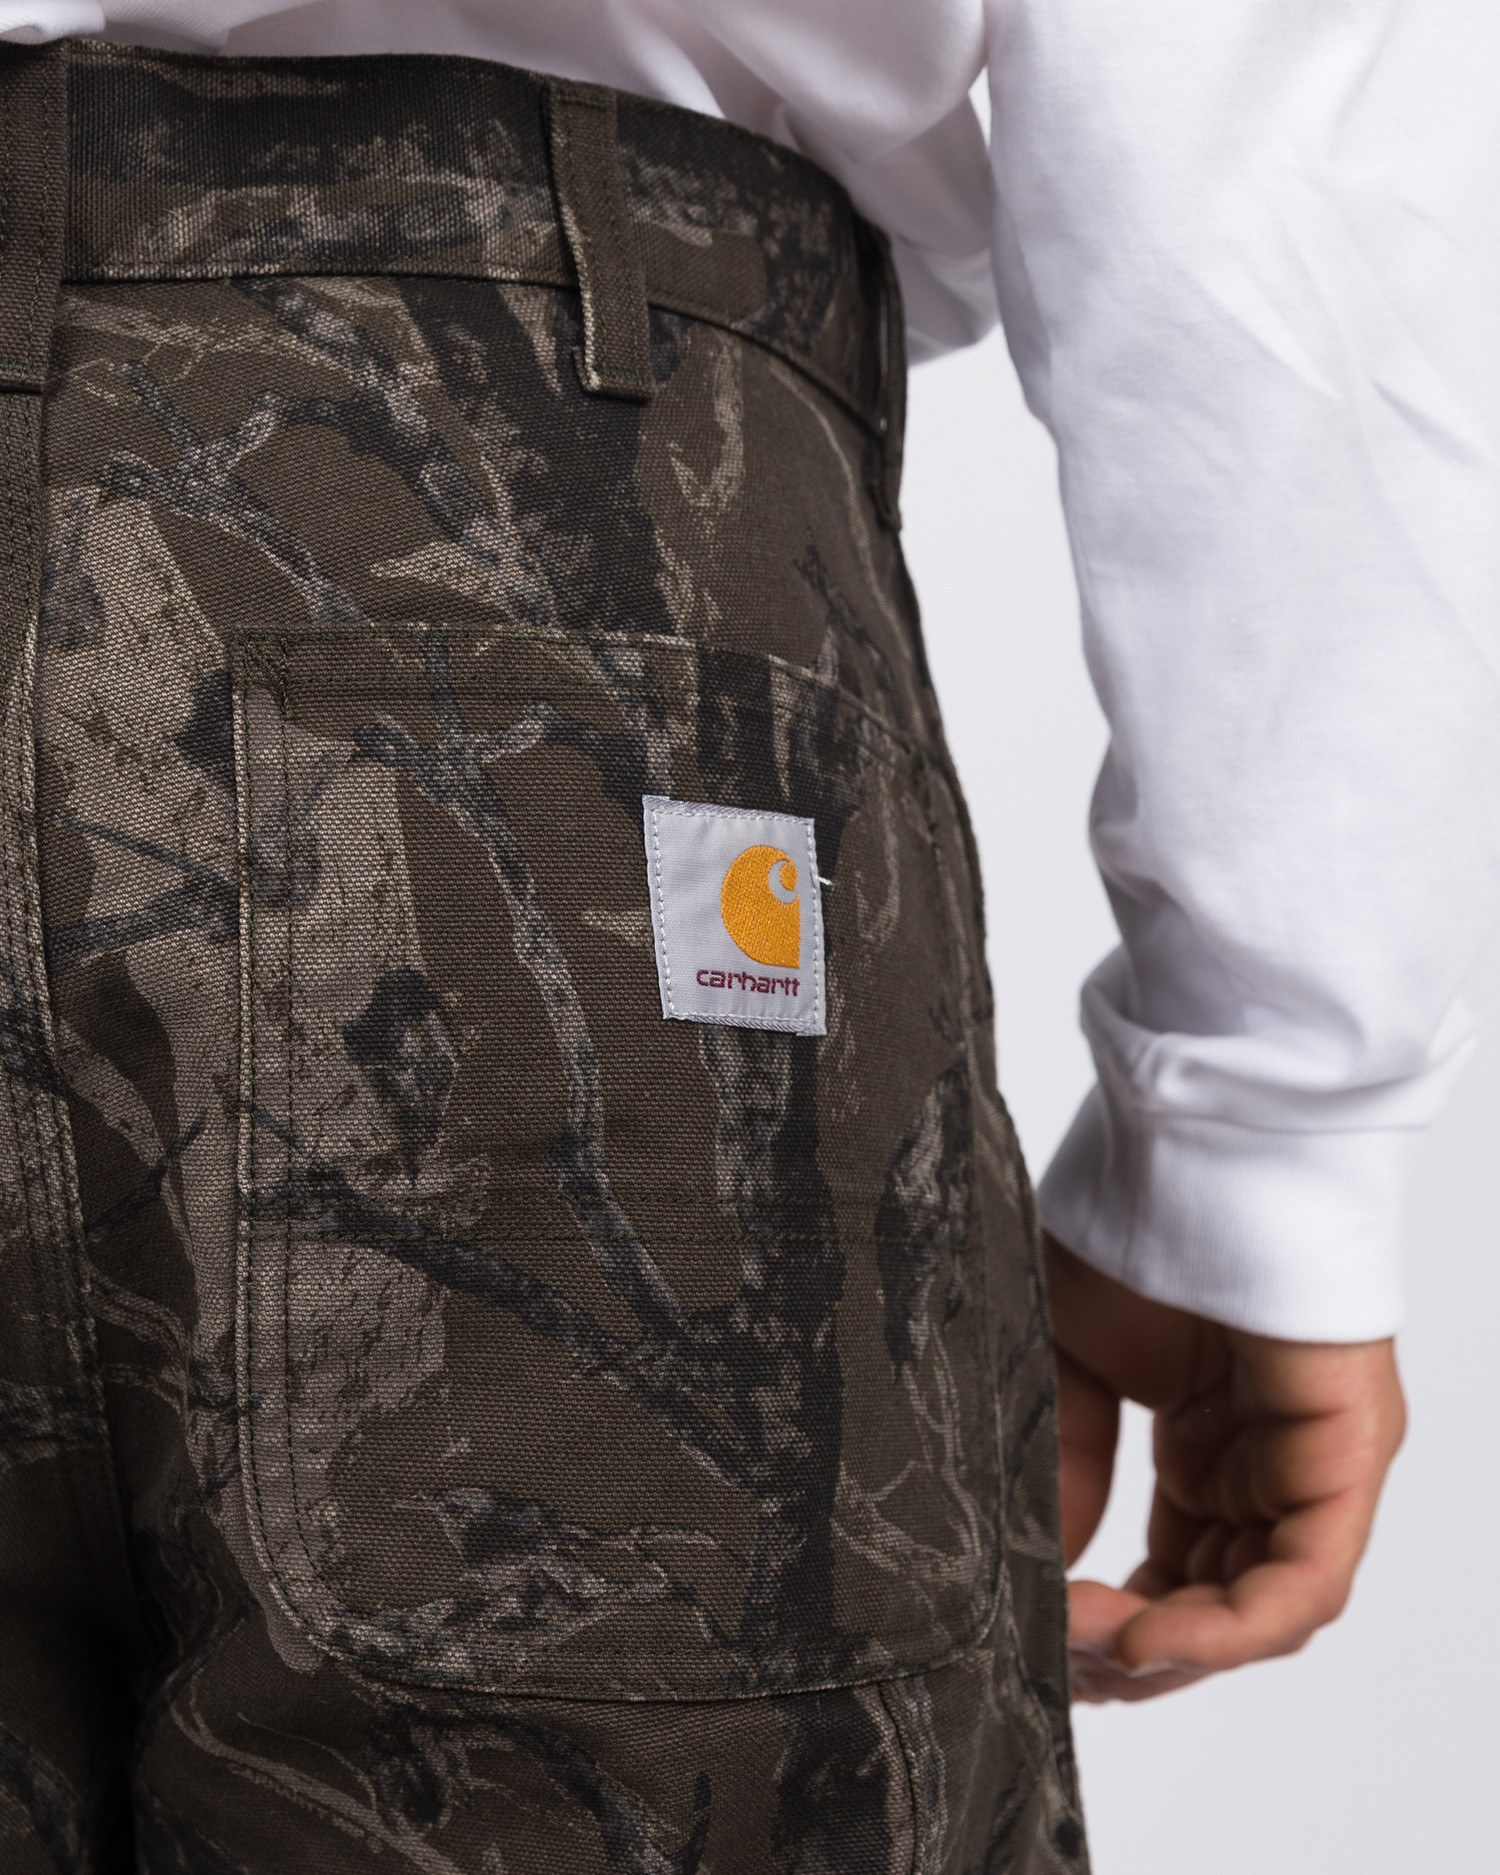 Carhartt single knee pant camo tree/green rinsed